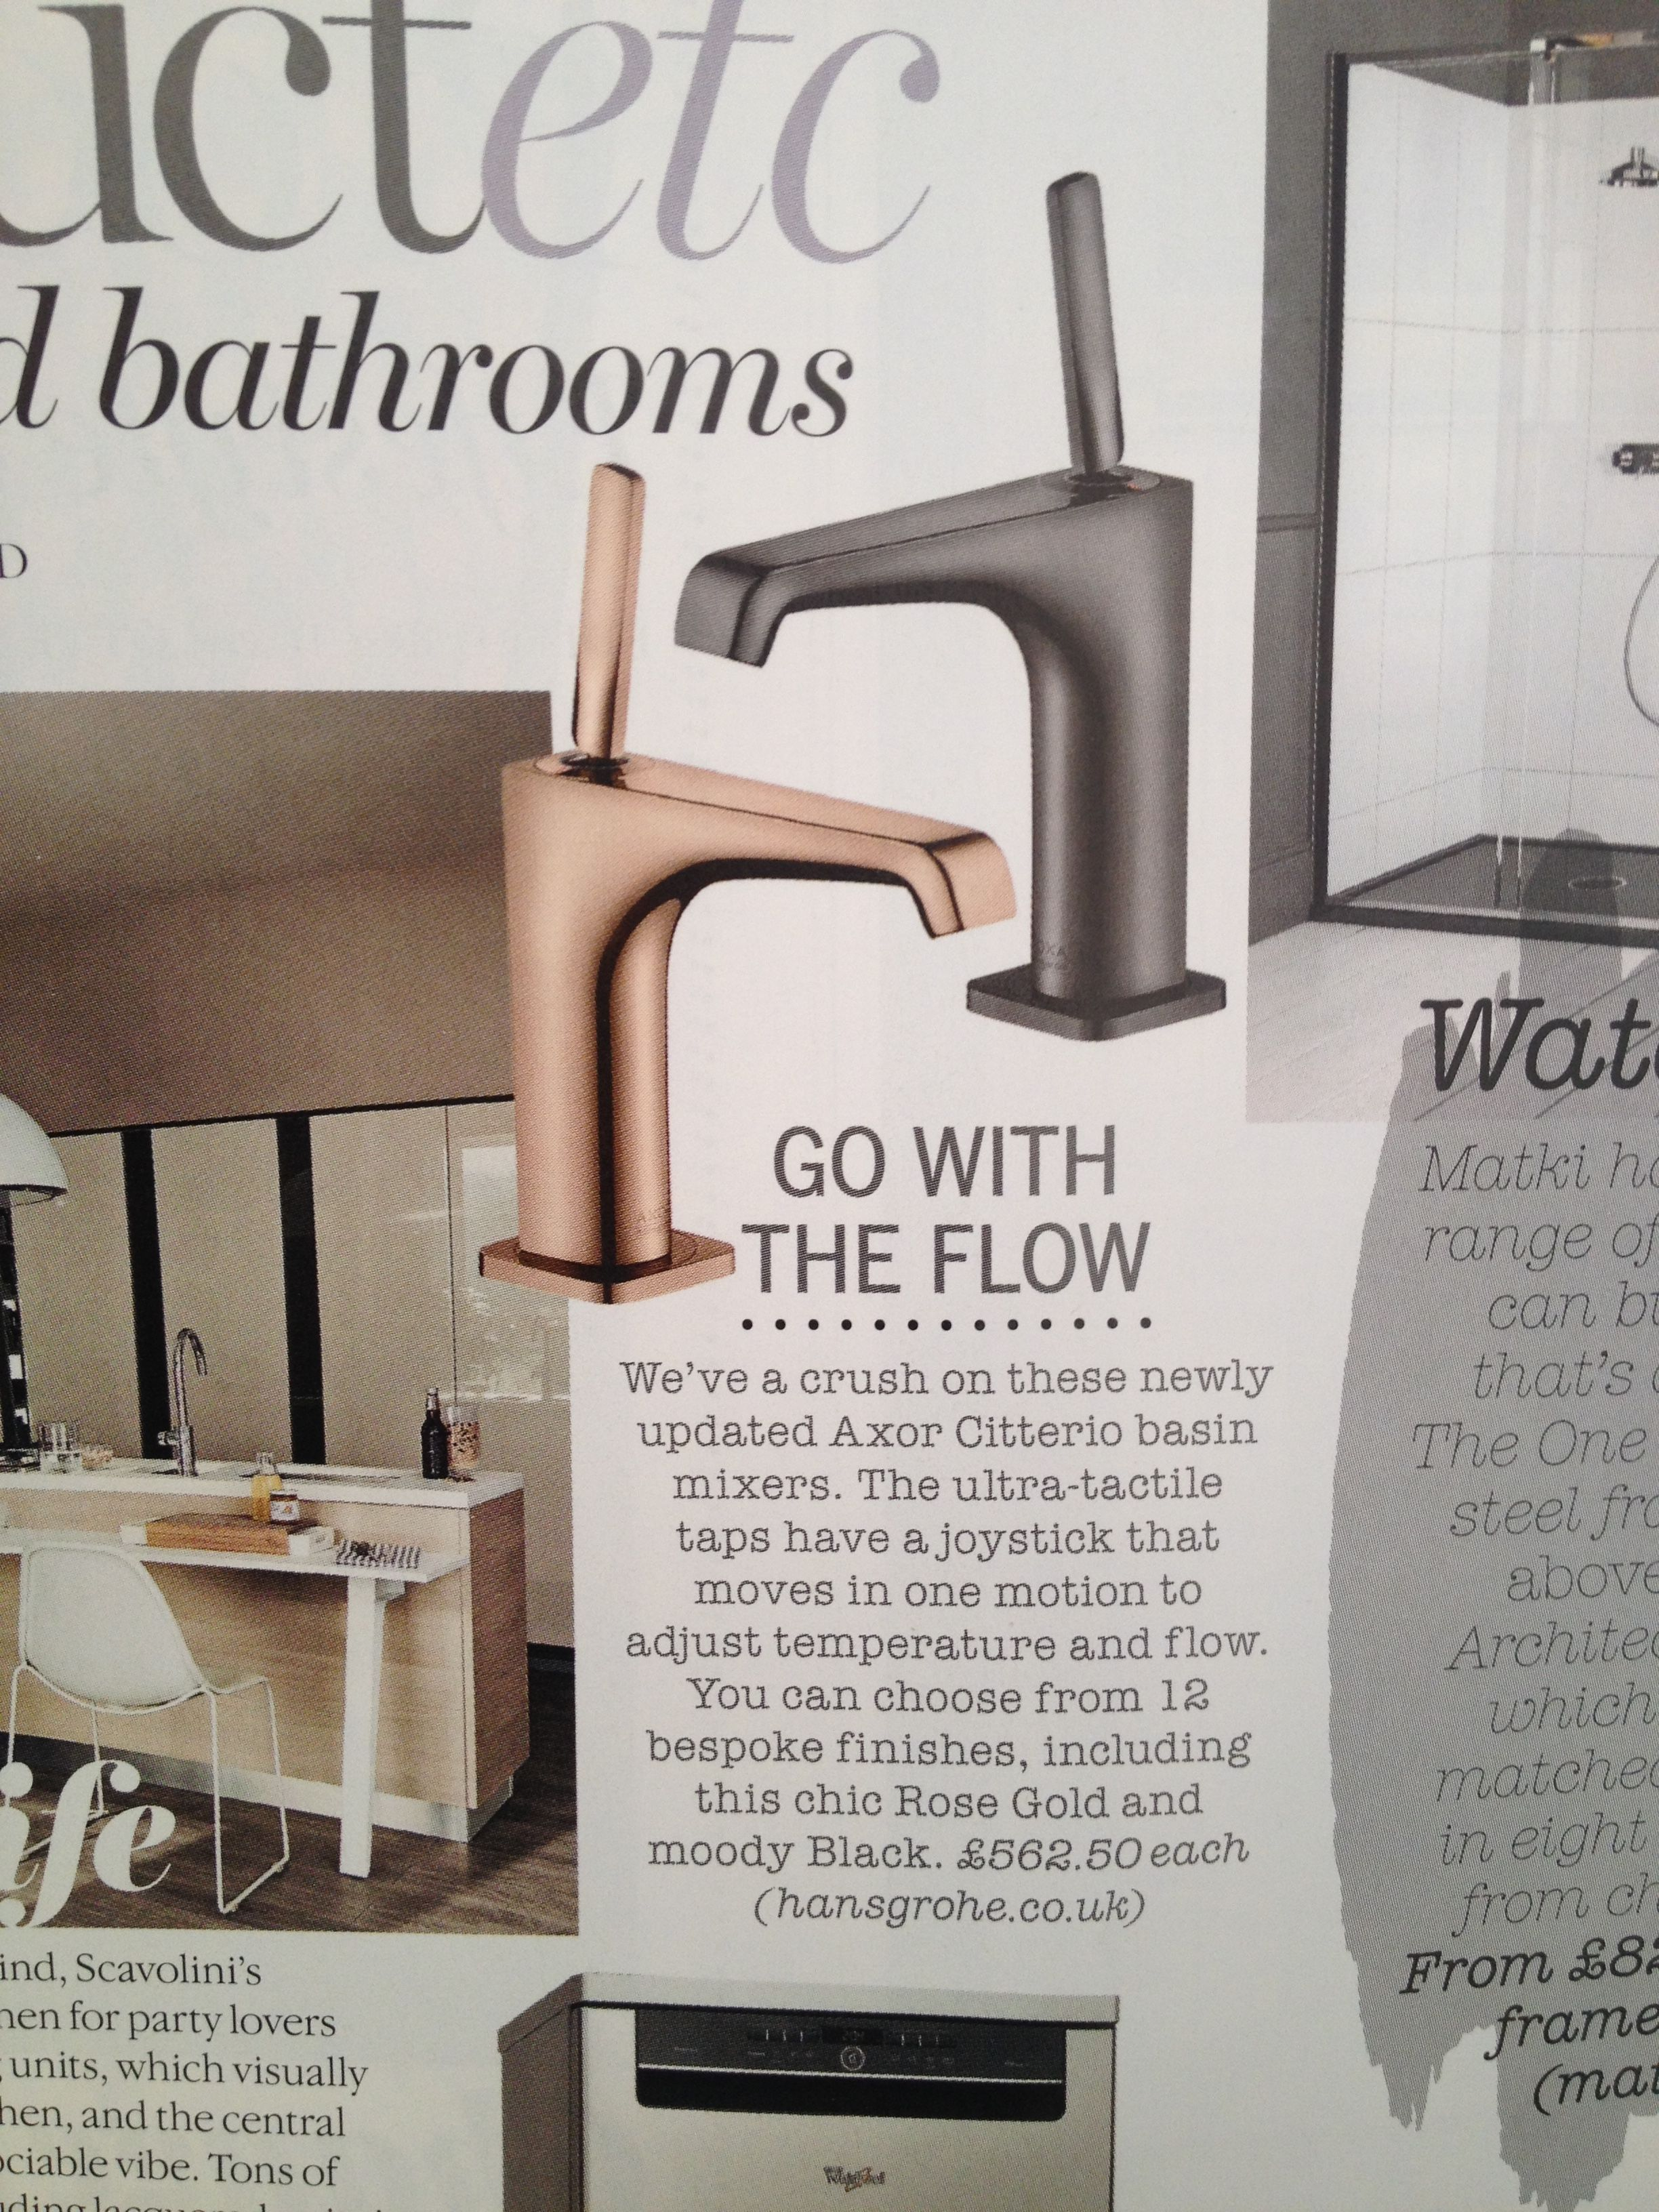 excellent rose gold mixer tap by hansgrohe co uk only 562 each excellent rose gold mixer tap by hansgrohe co uk only 562 each